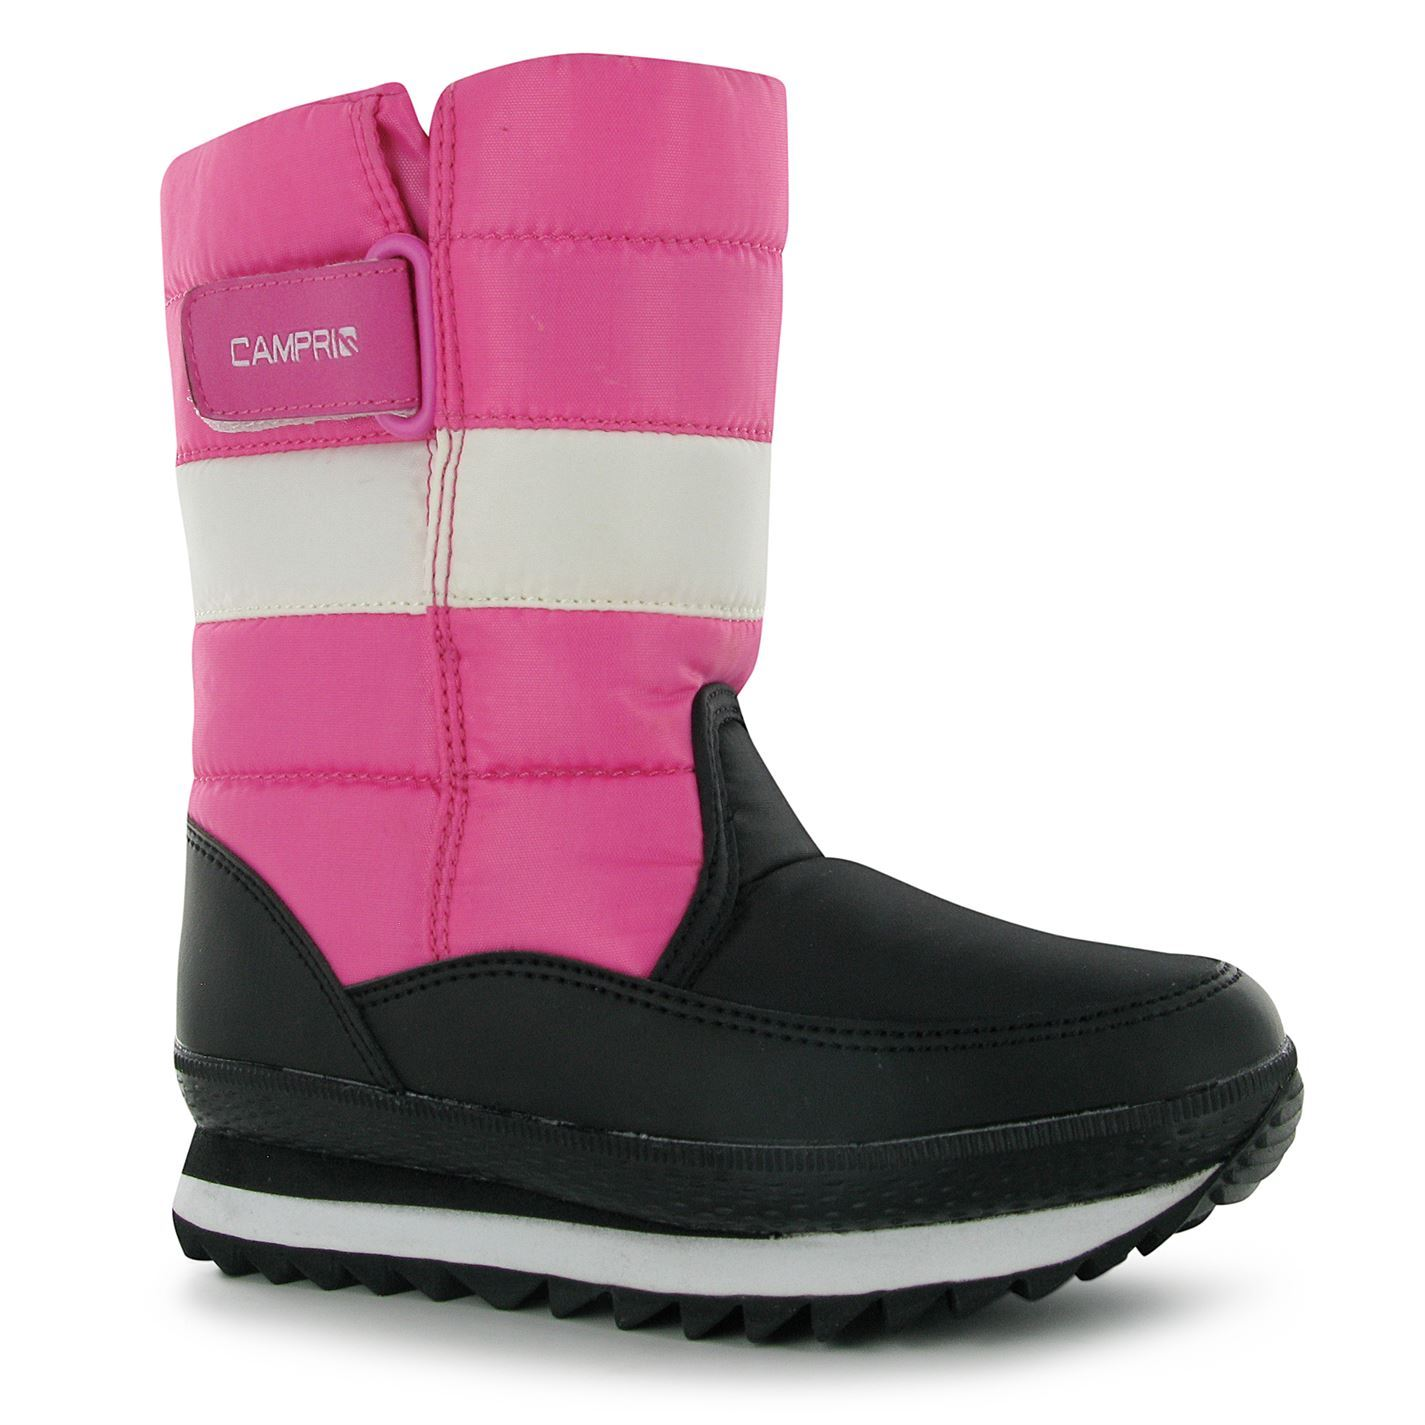 Campri Snow Jogger Boots Infants Girls Black Pink Baby Winter Shoes